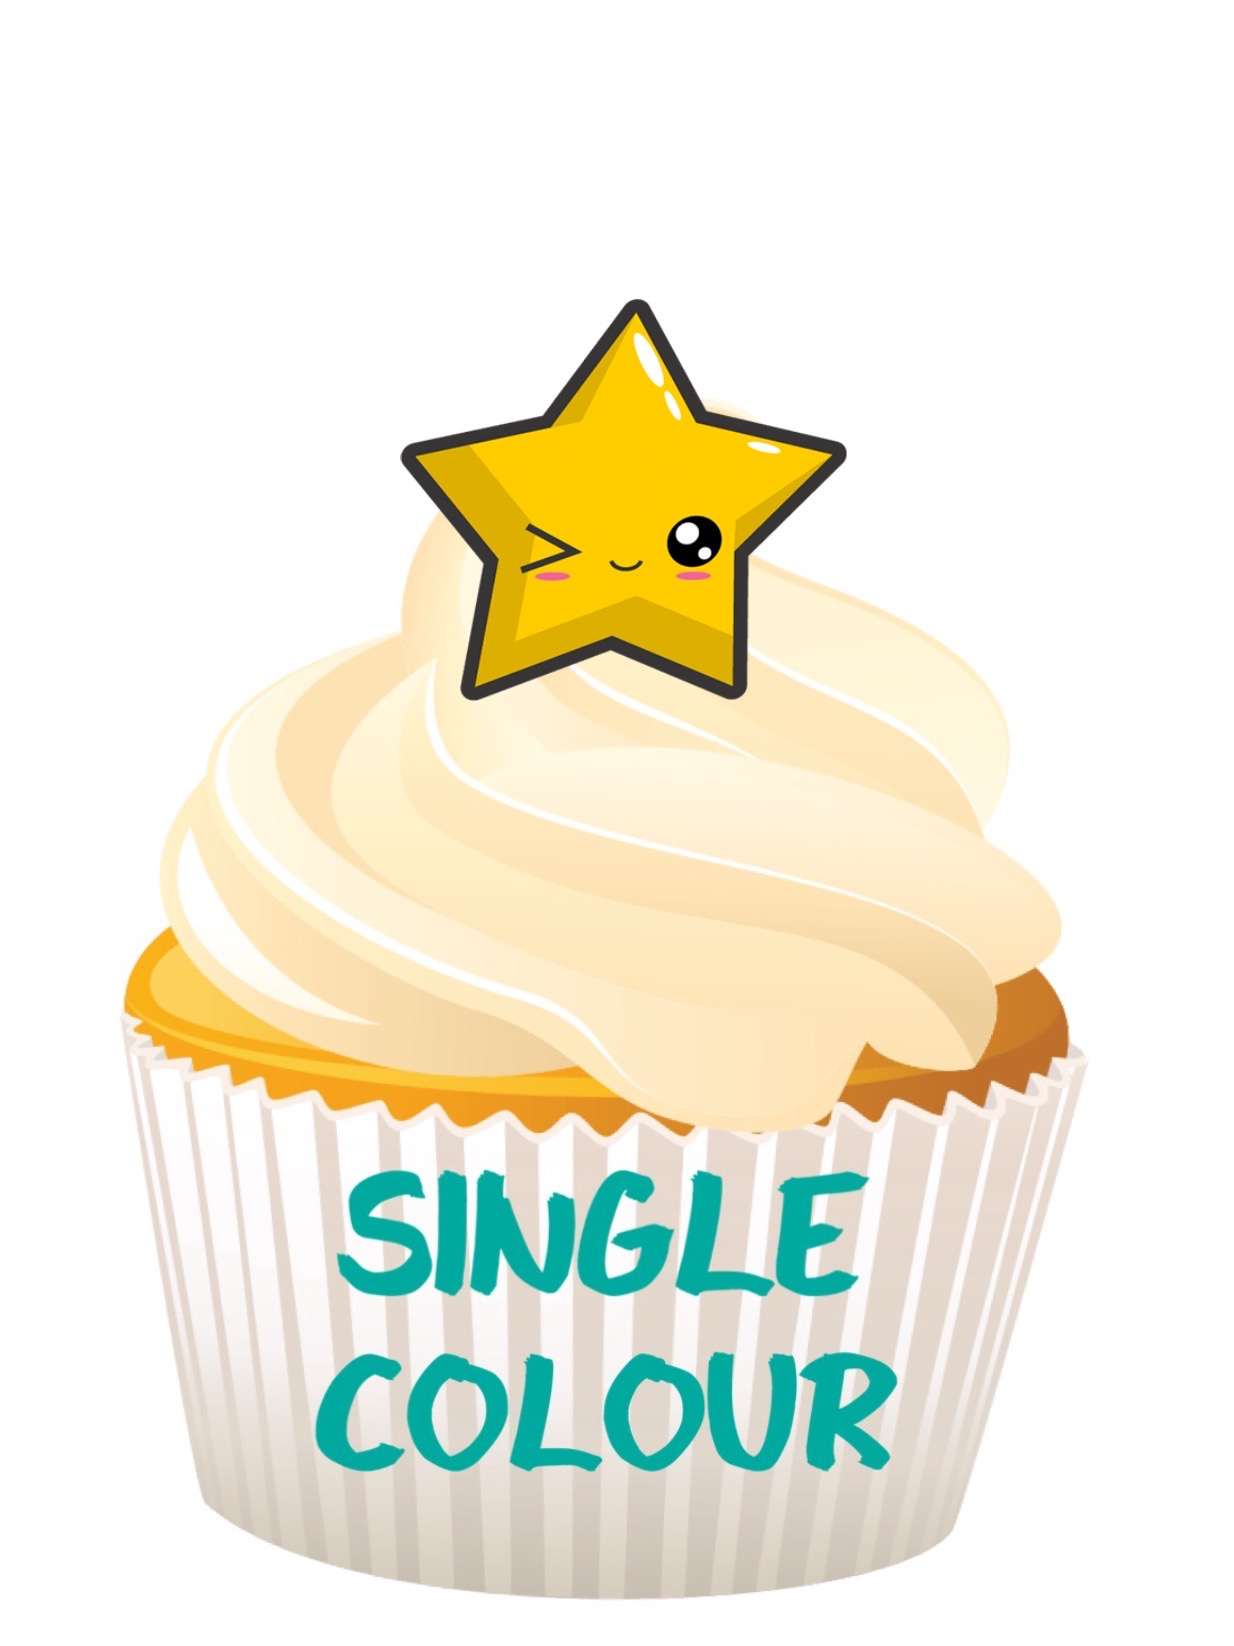 Single Colour